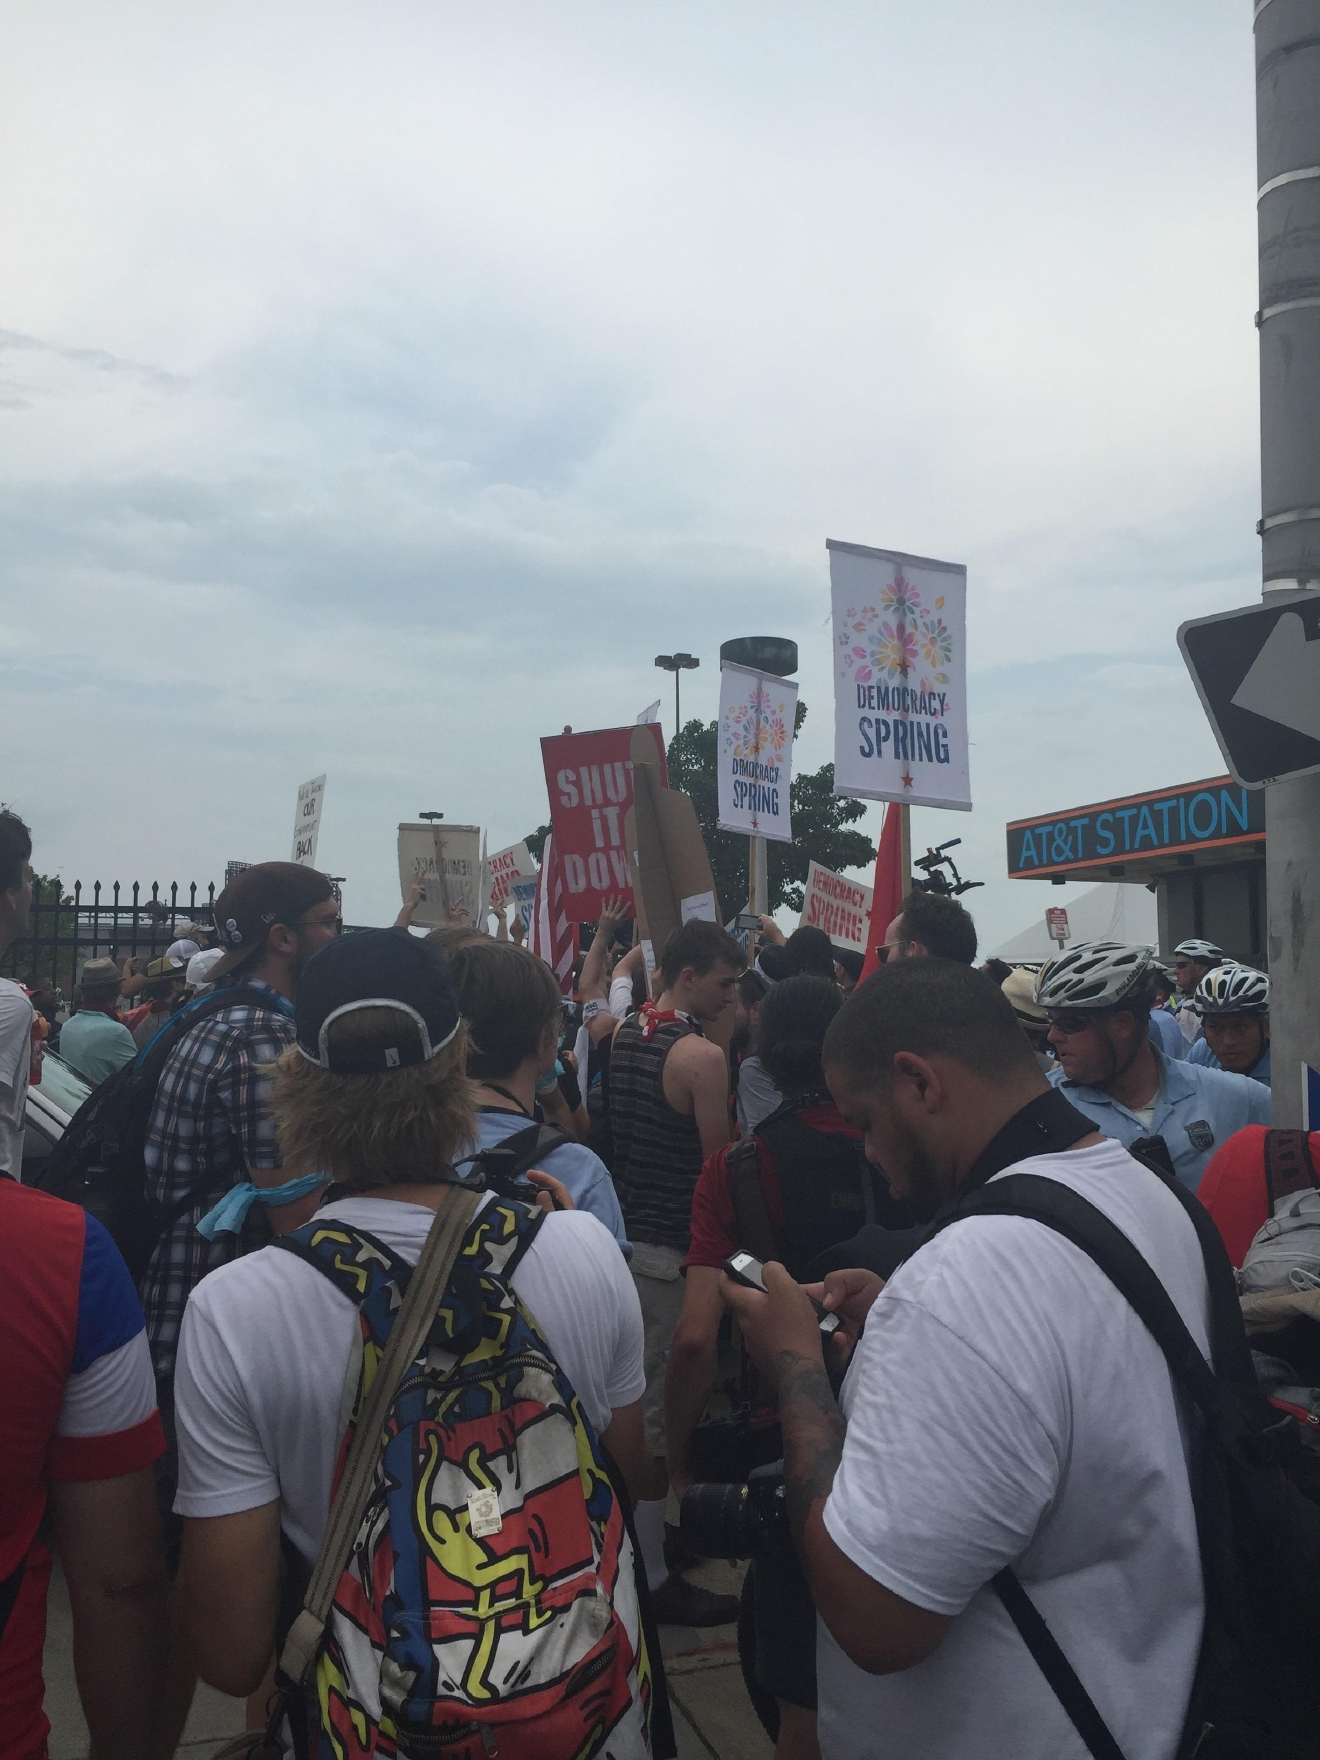 Protesters gather outside of the Democratic National Convention. (Amanda Ota, Sinclair Broadcast Group)